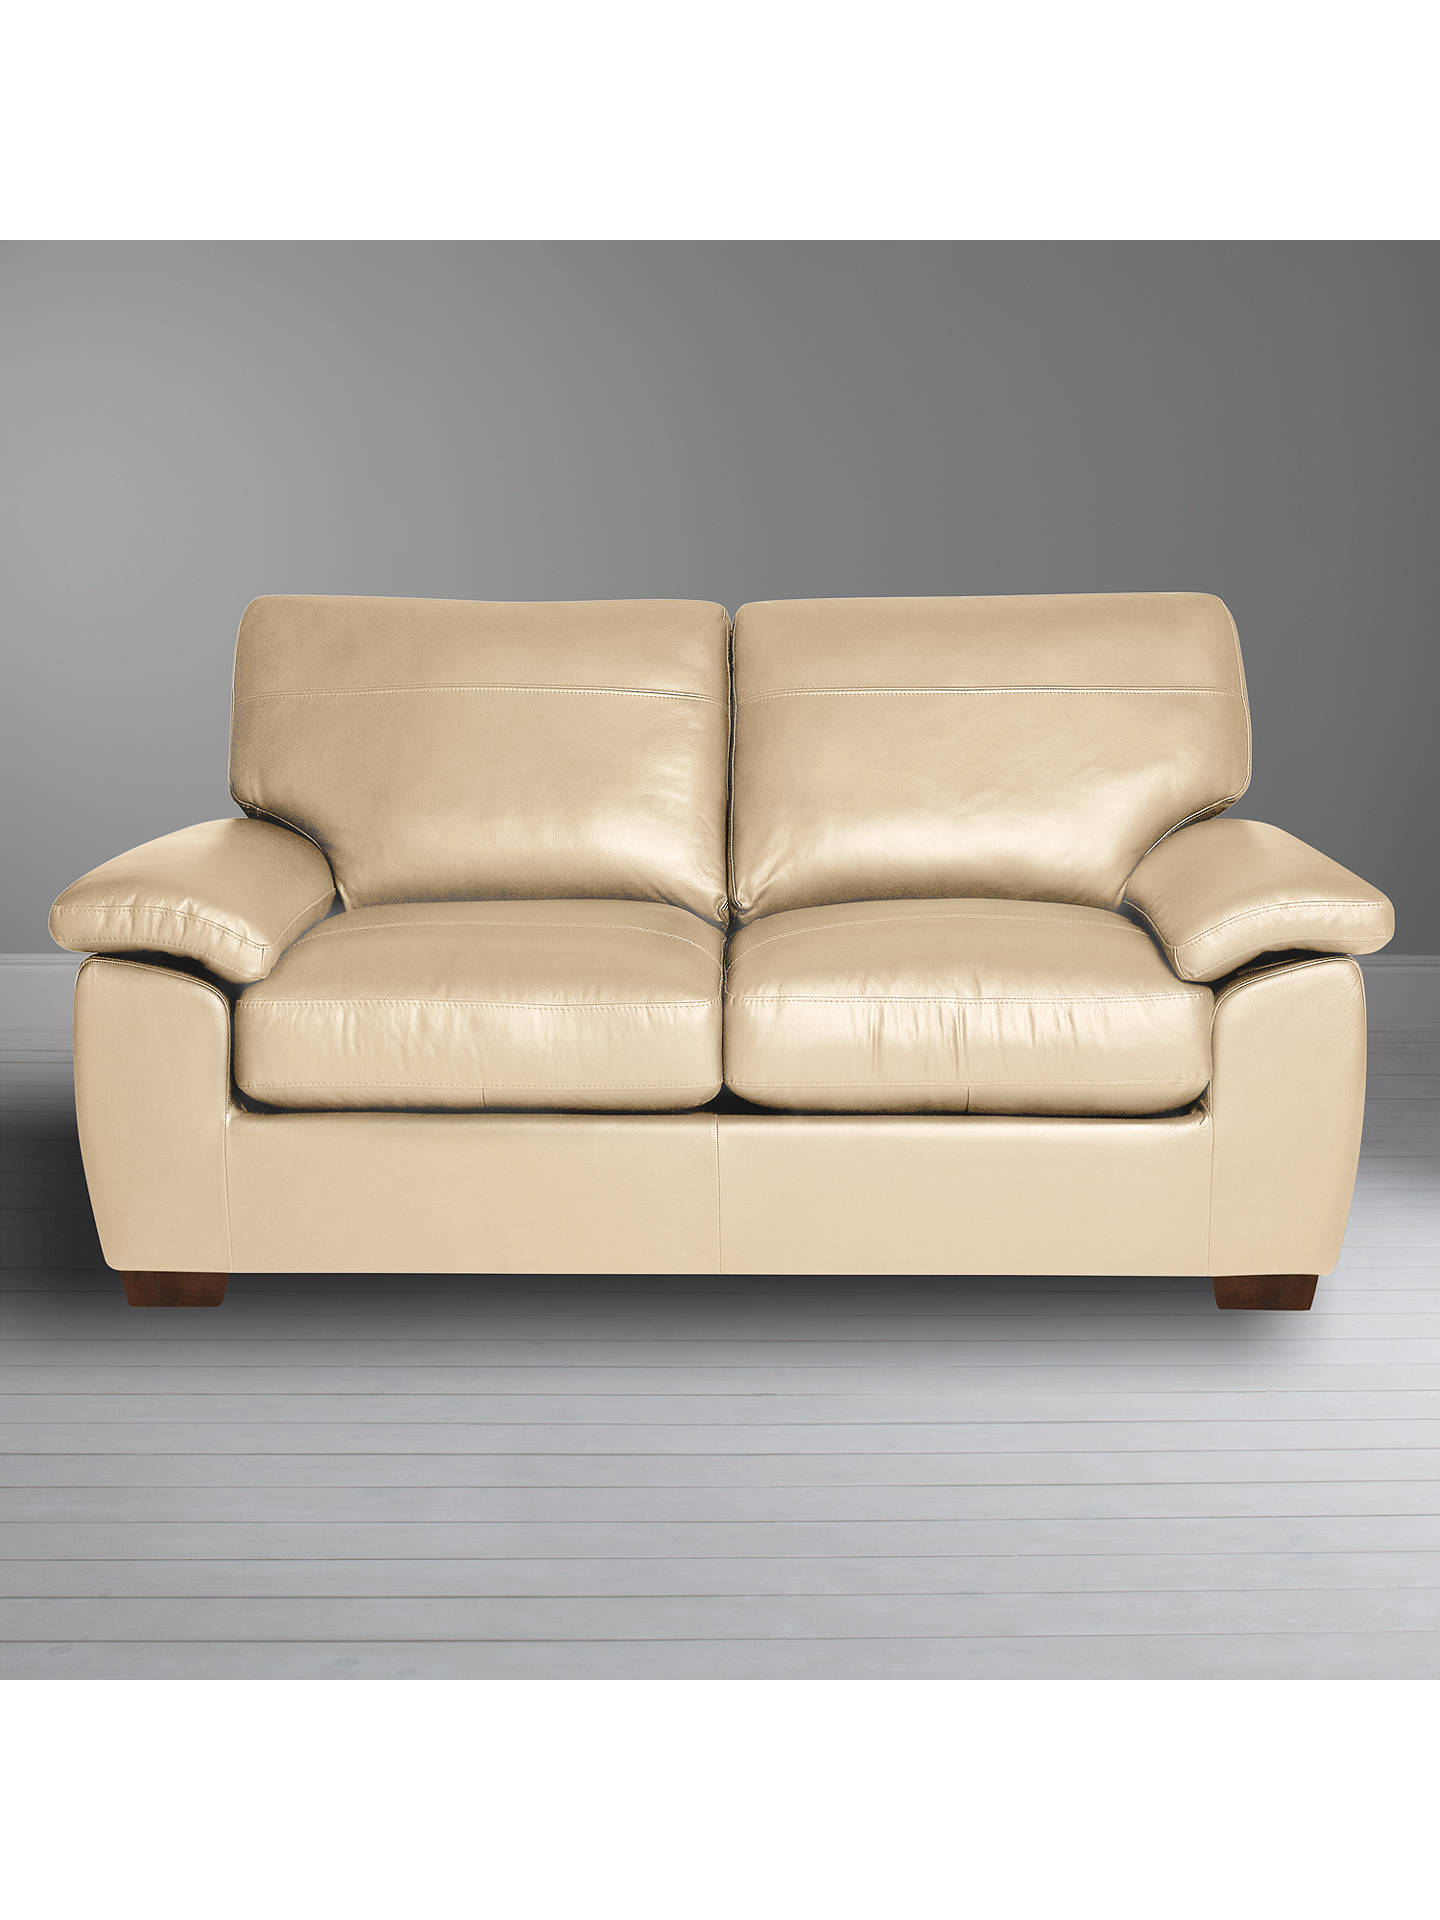 Buy John Lewis & Partners Camden Medium 2 Seater Leather Sofa, Dark Leg, Contempo Ivory Online at johnlewis.com